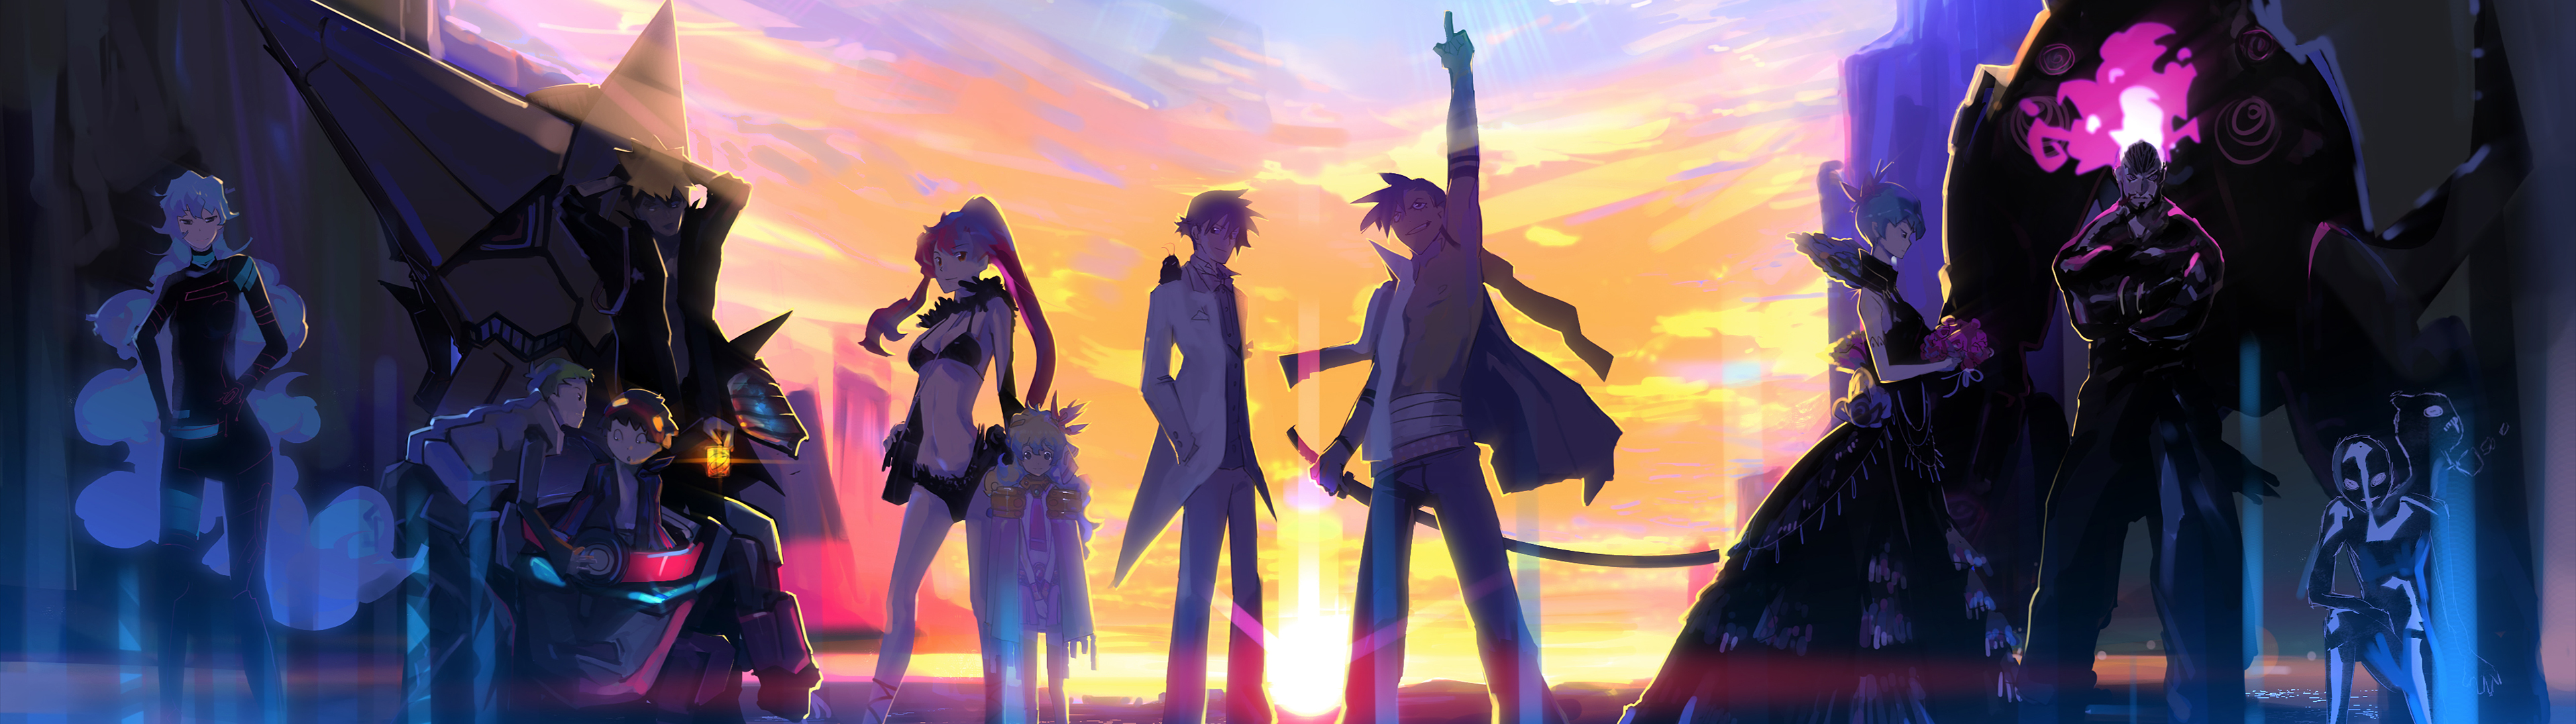 Awesome Dual Monitor Anime Wallpaper